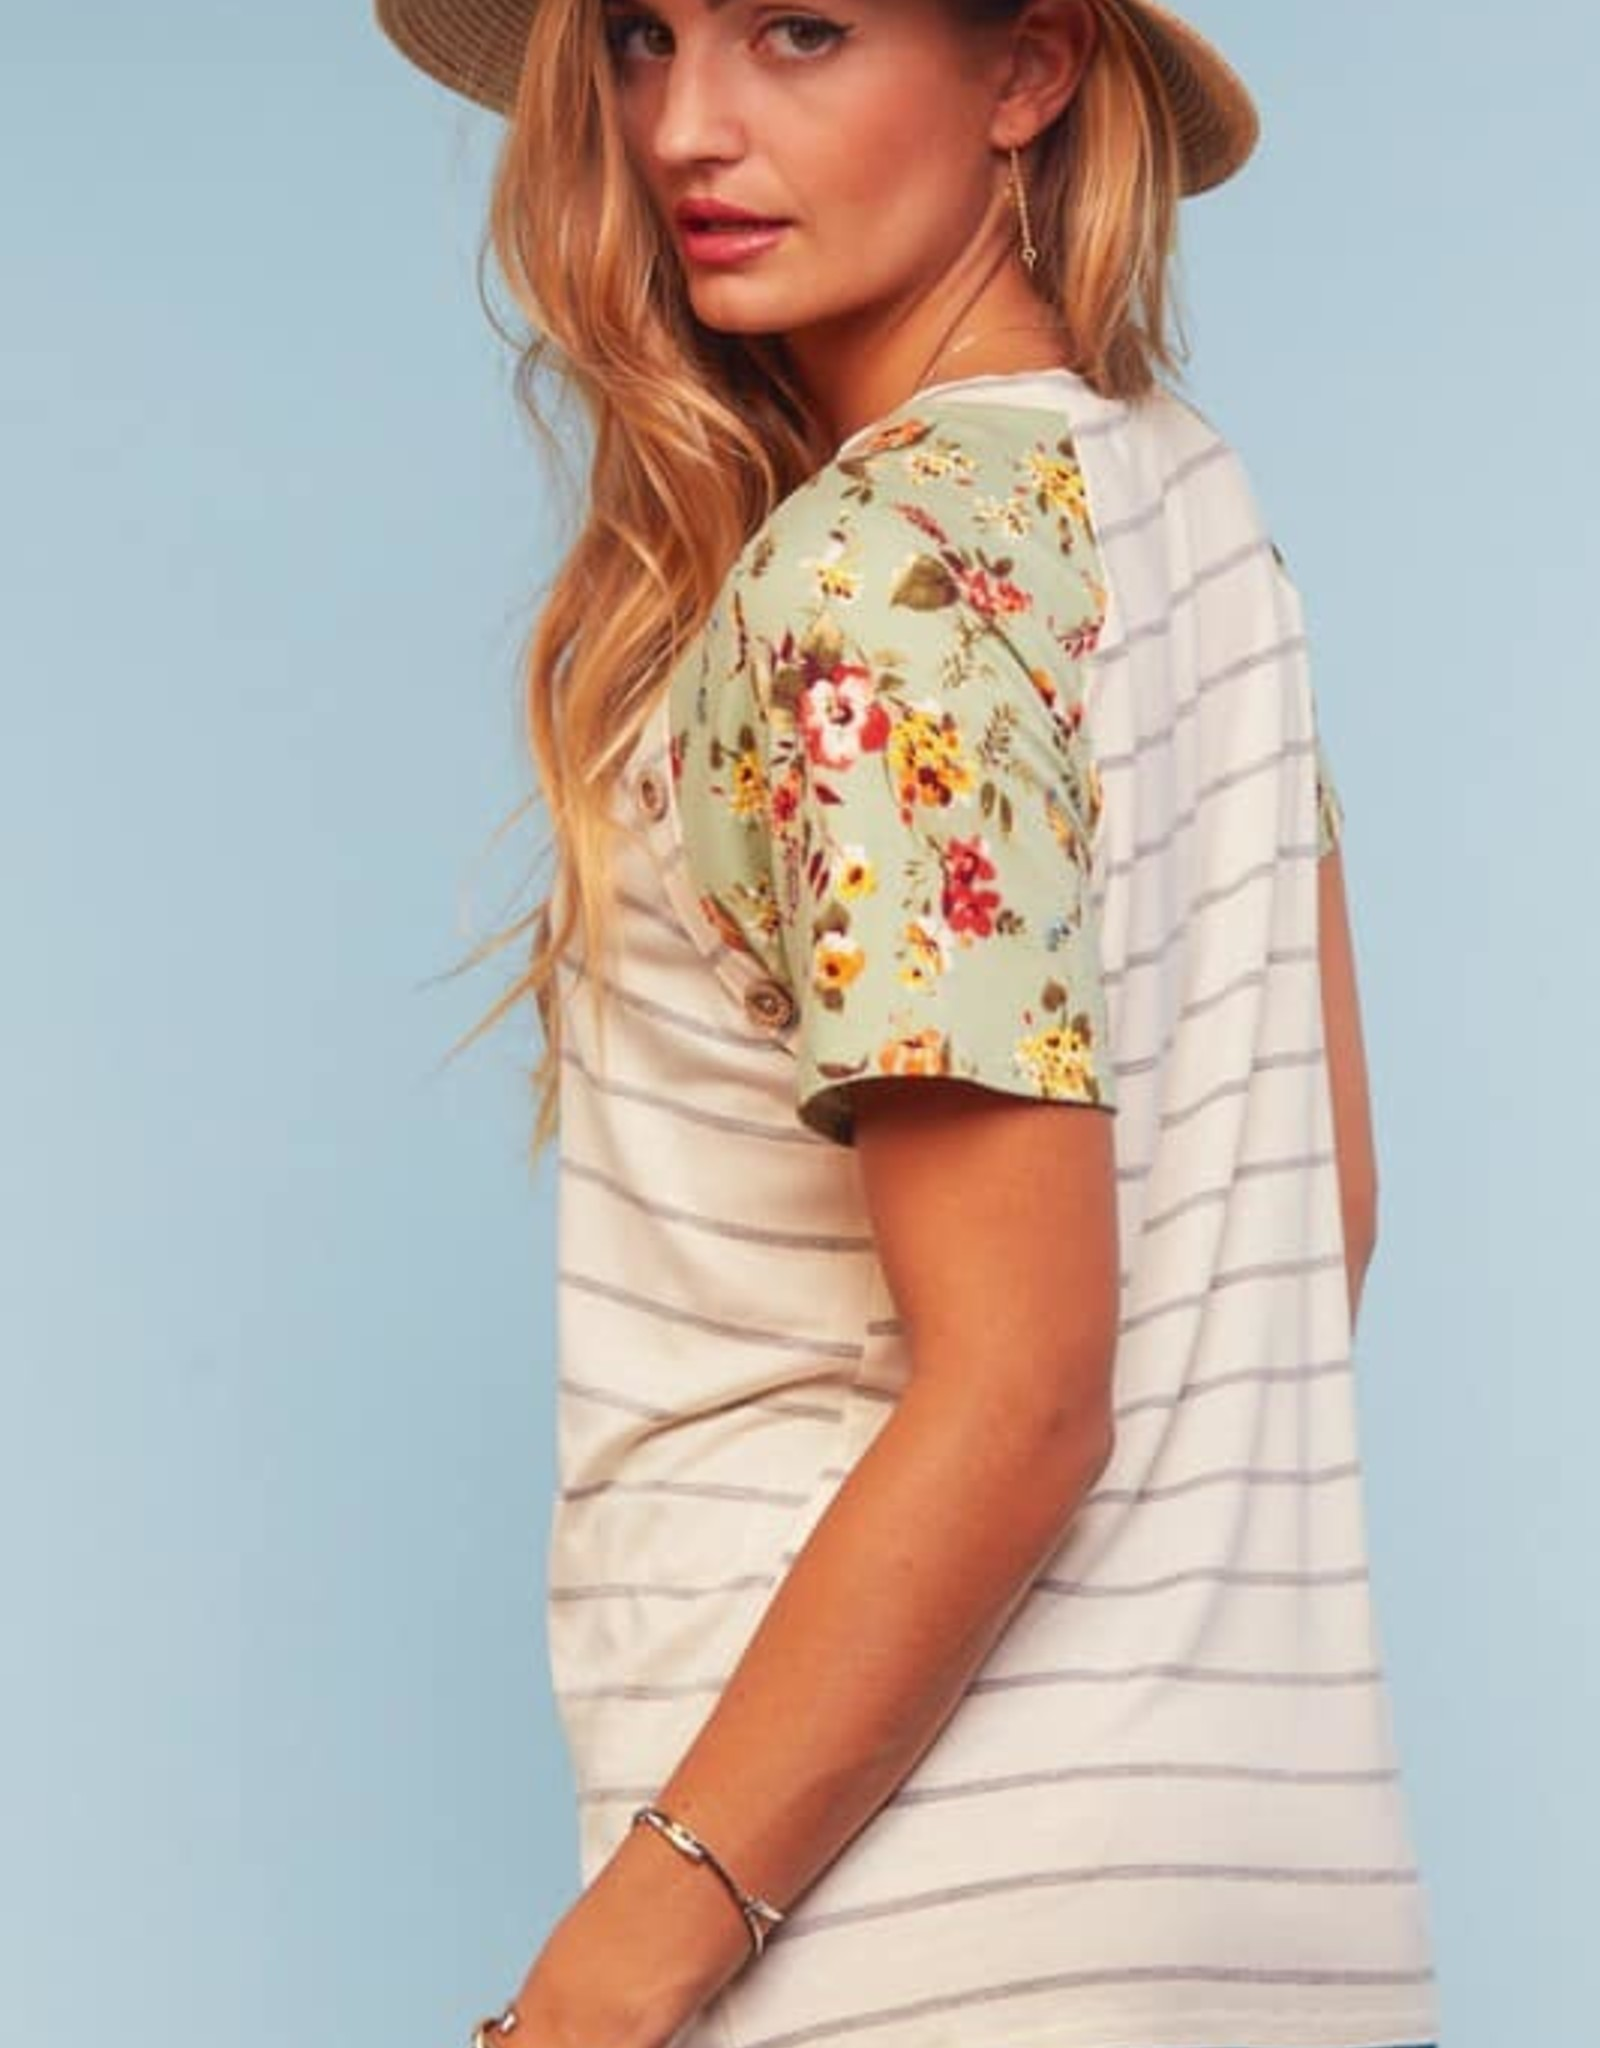 Floral Print Short Sleeve Top with Button Detail